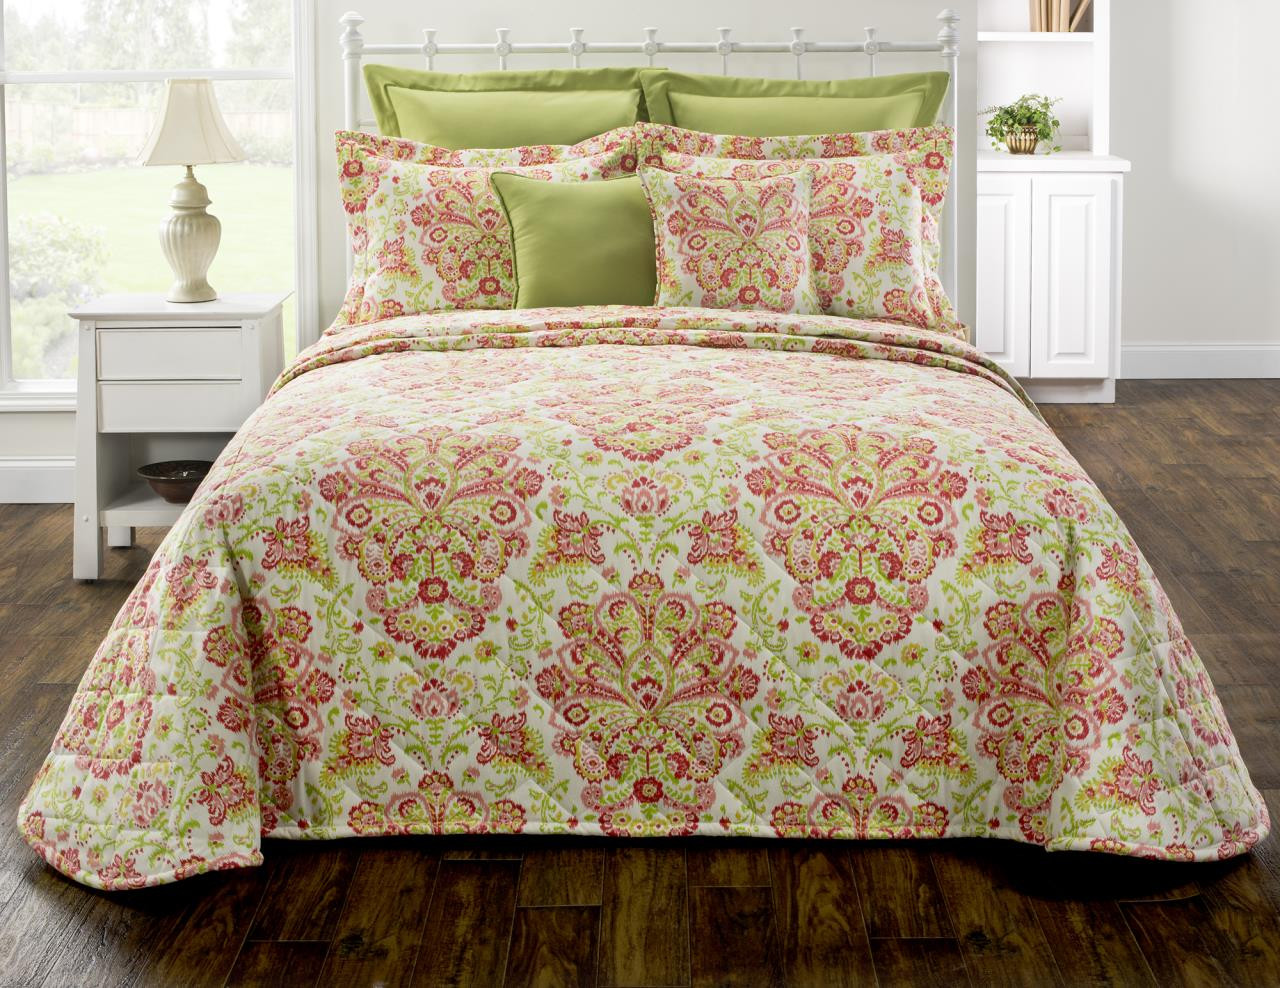 Provence Poppy Bedding Collection -